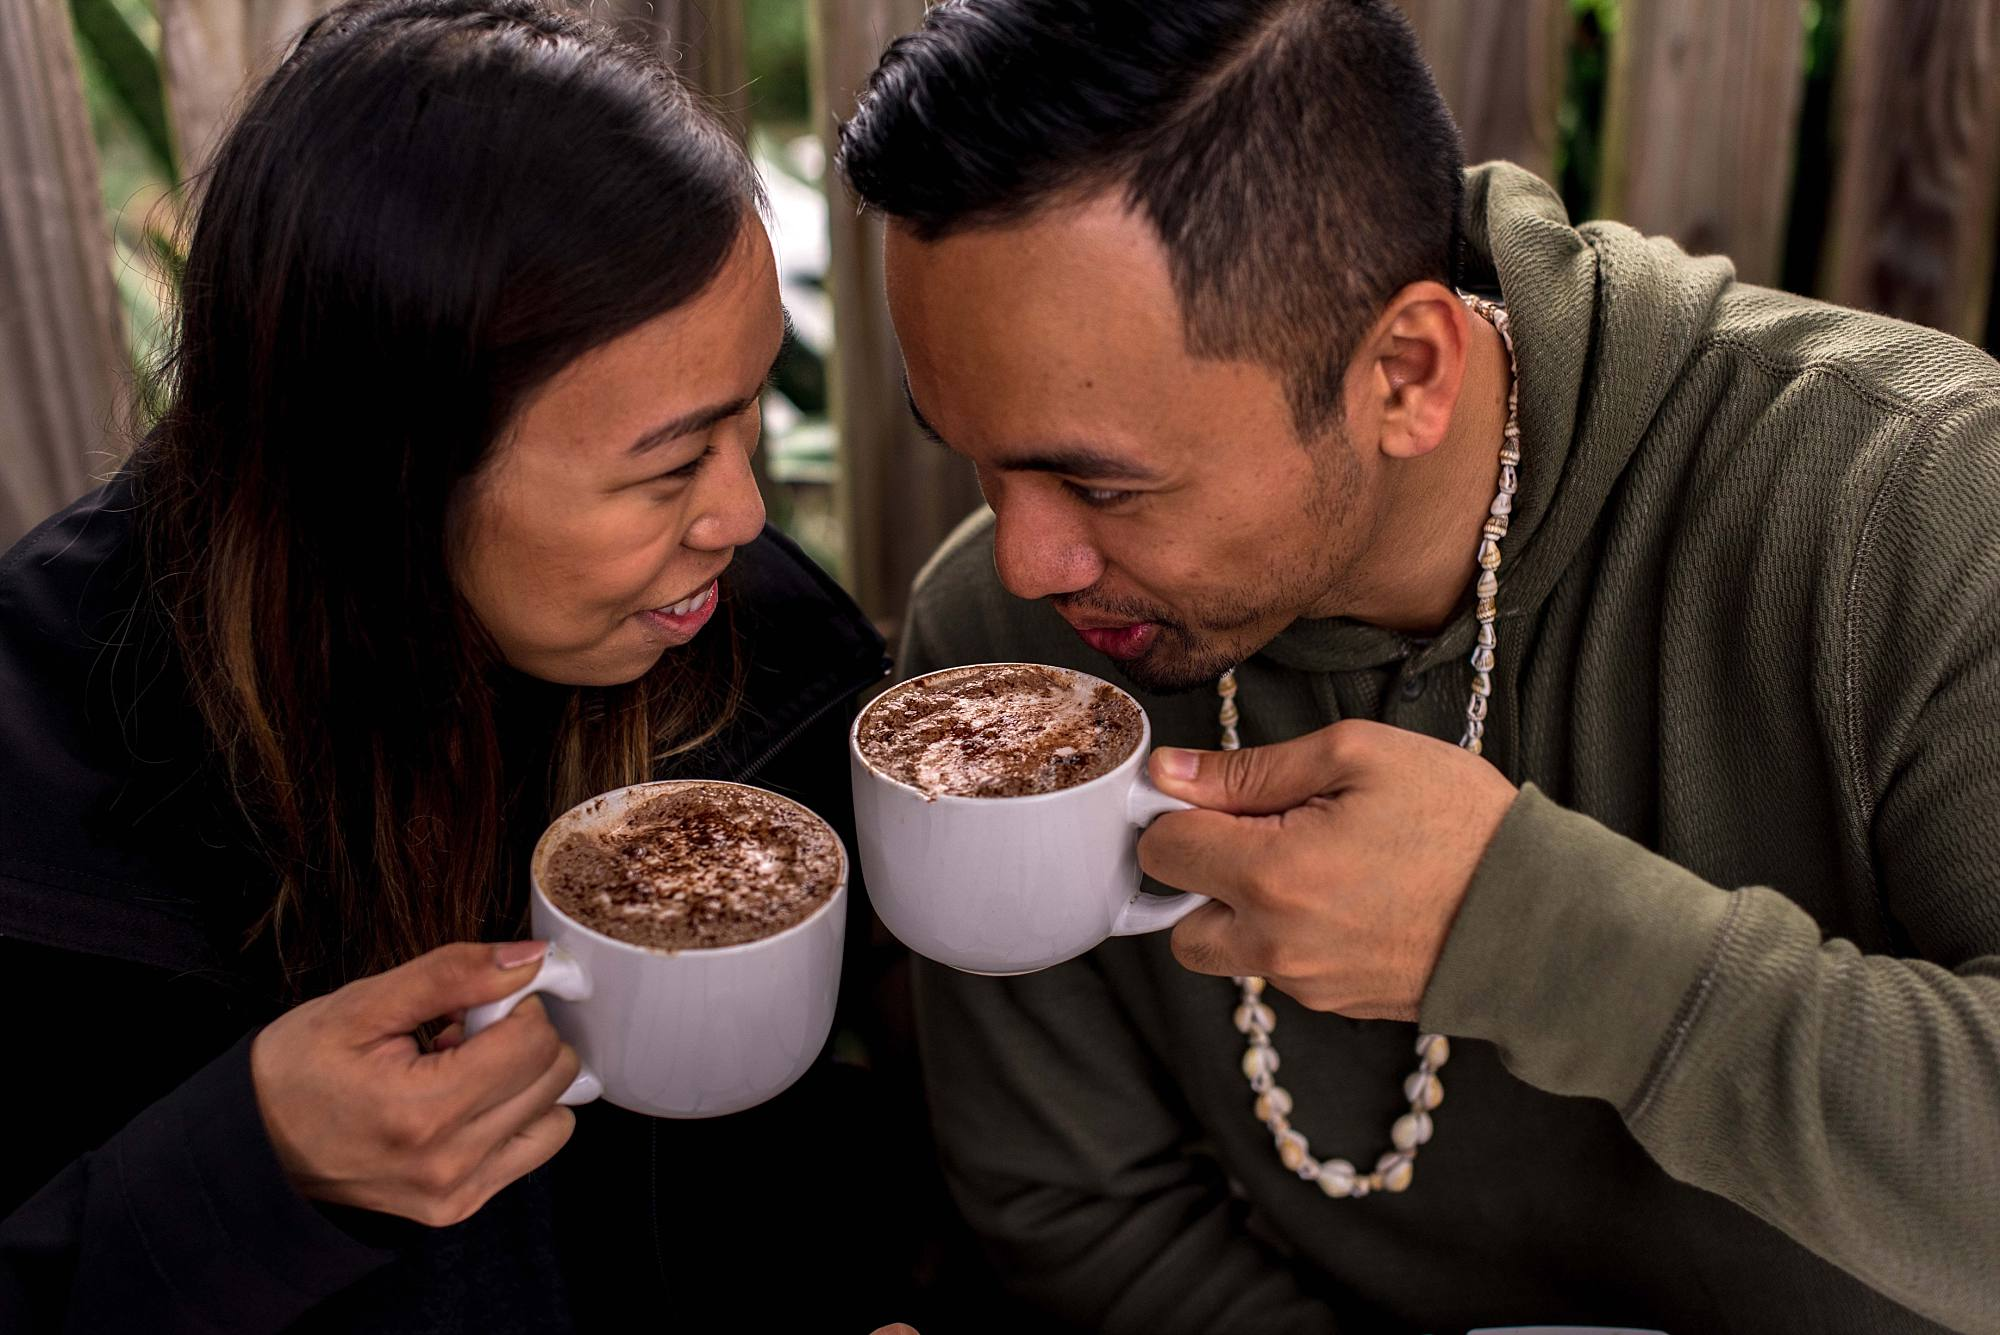 couple canoodling over coffee